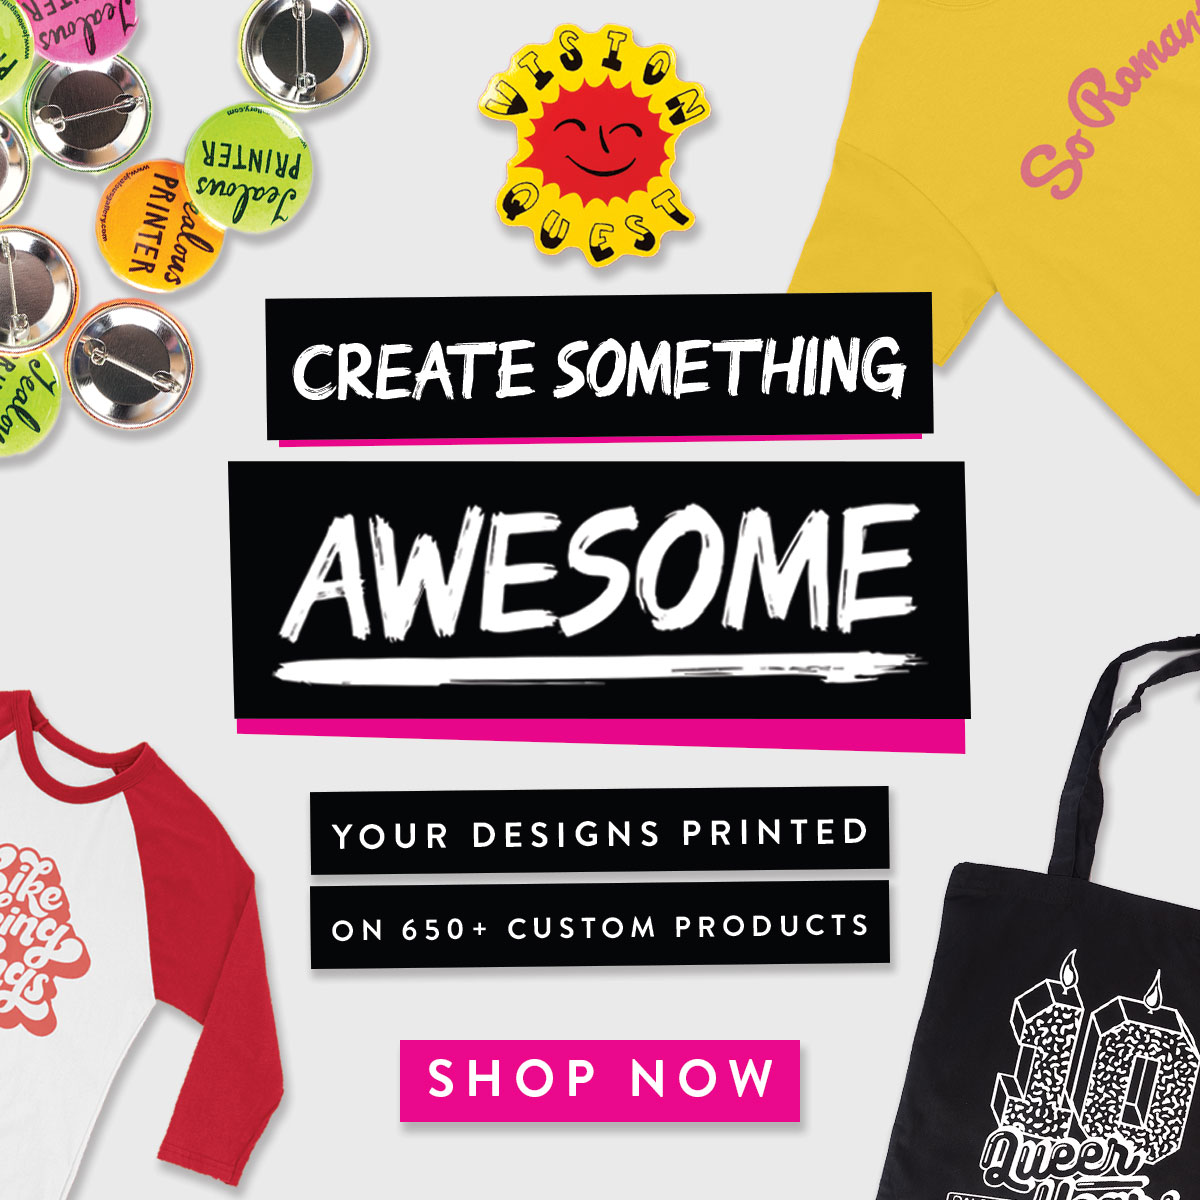 Awesome Merchandise | Custom Print, T-Shirts, Badges & much more